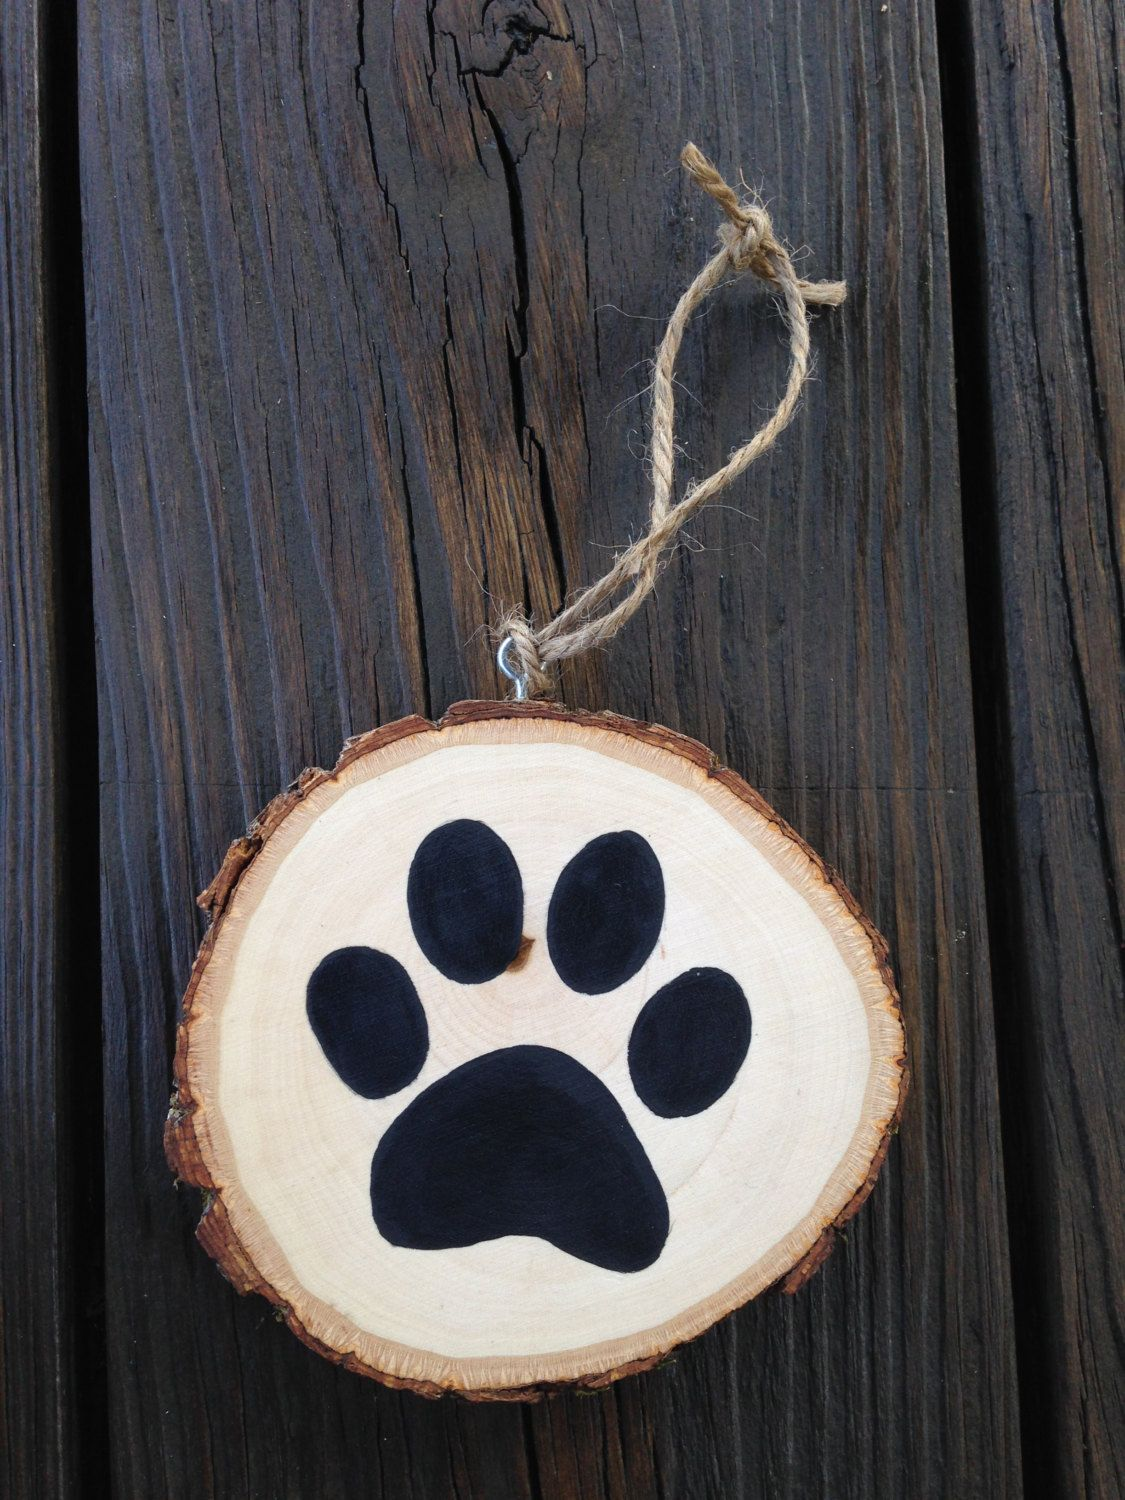 Wood Slice Paw Print Ornament Pet Ornament Dog Ornament Dog Etsy Holiday Pet Gifts Paw Print Ornament Dog Ornaments